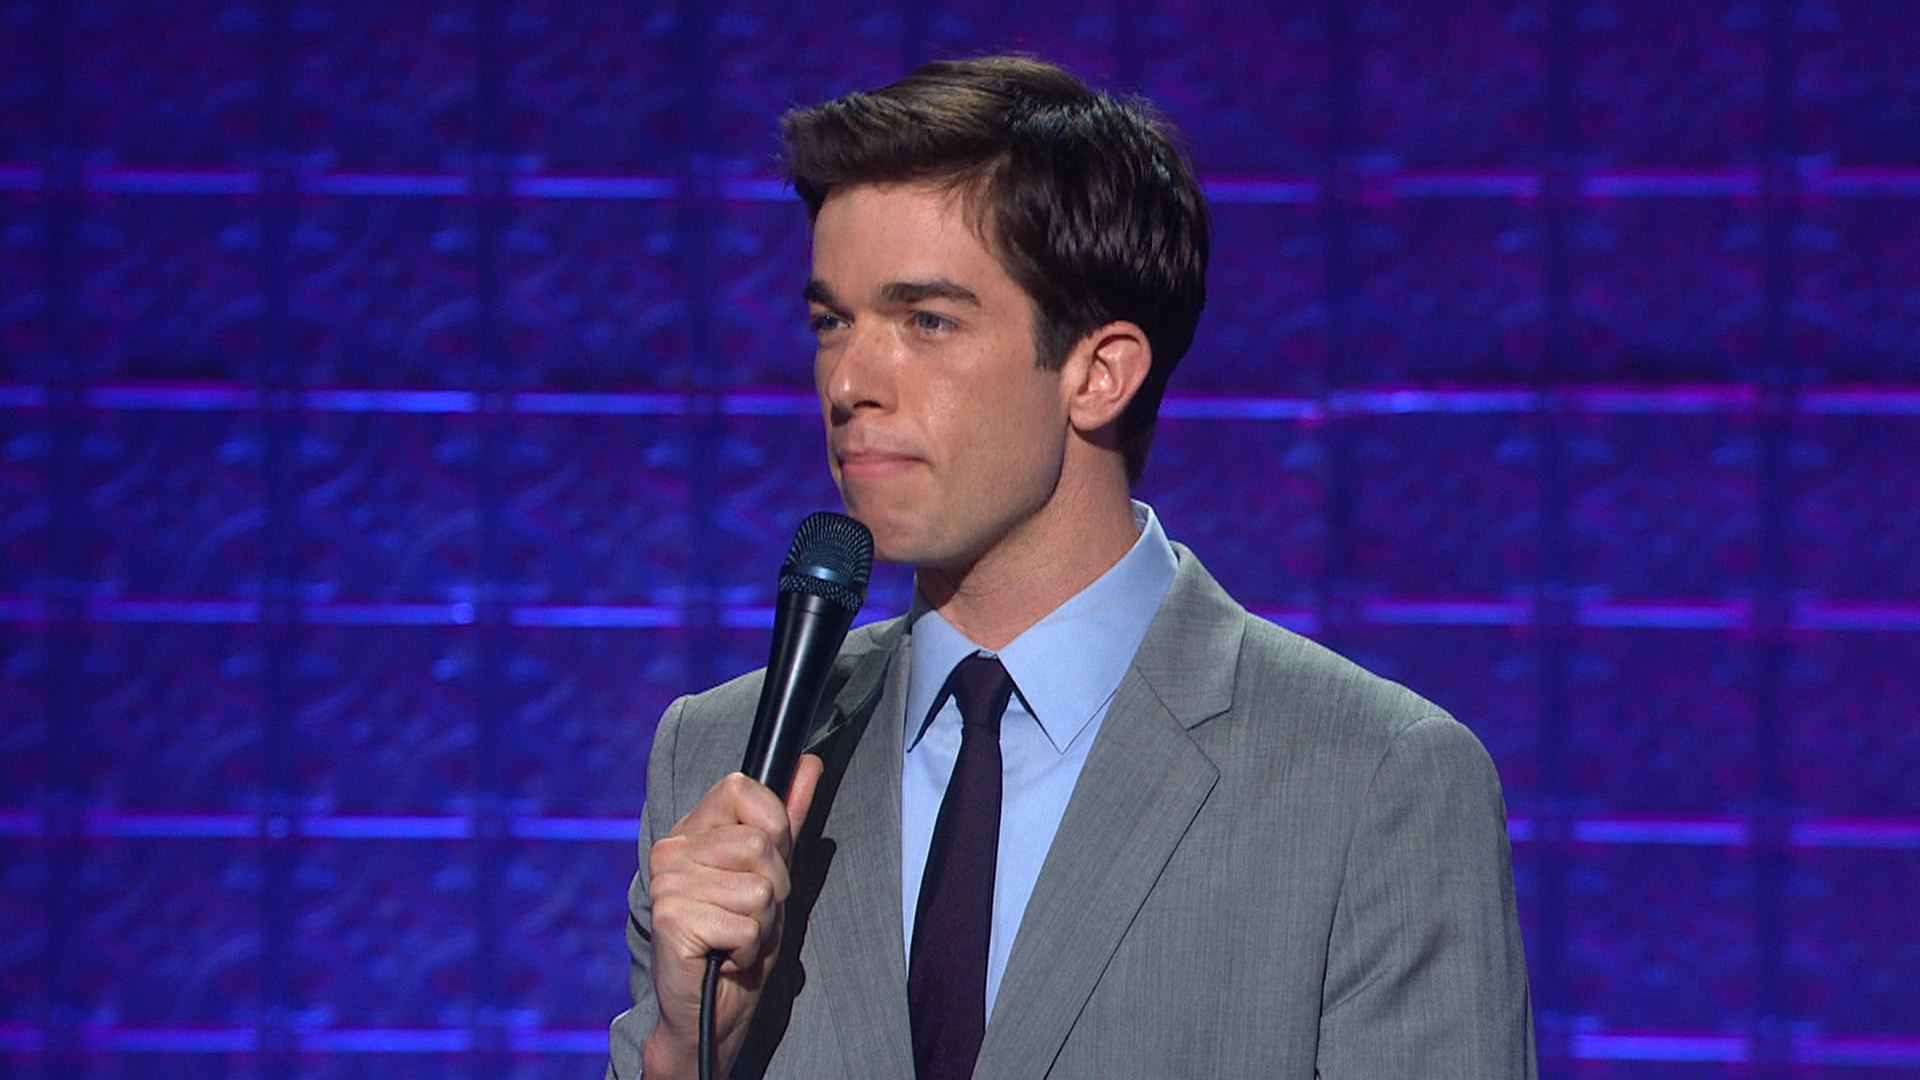 John Mulaney - Tall Child